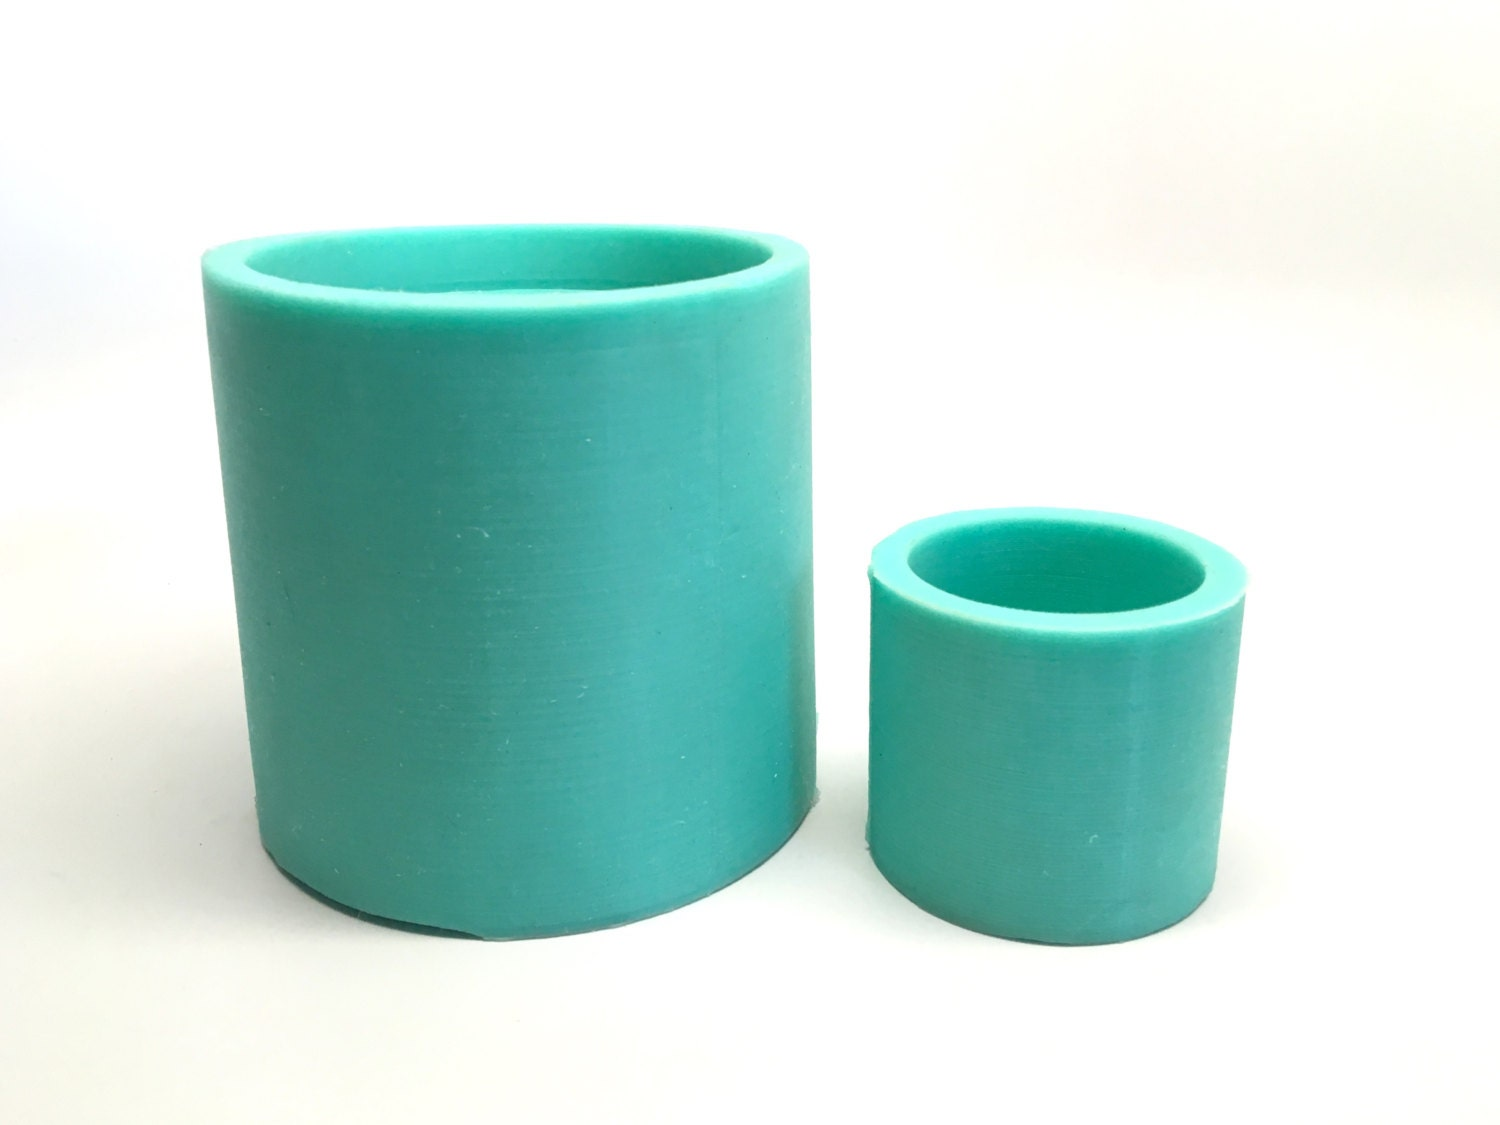 4 Quot Cylindrical Planter Mold Silicone Geometric Mold